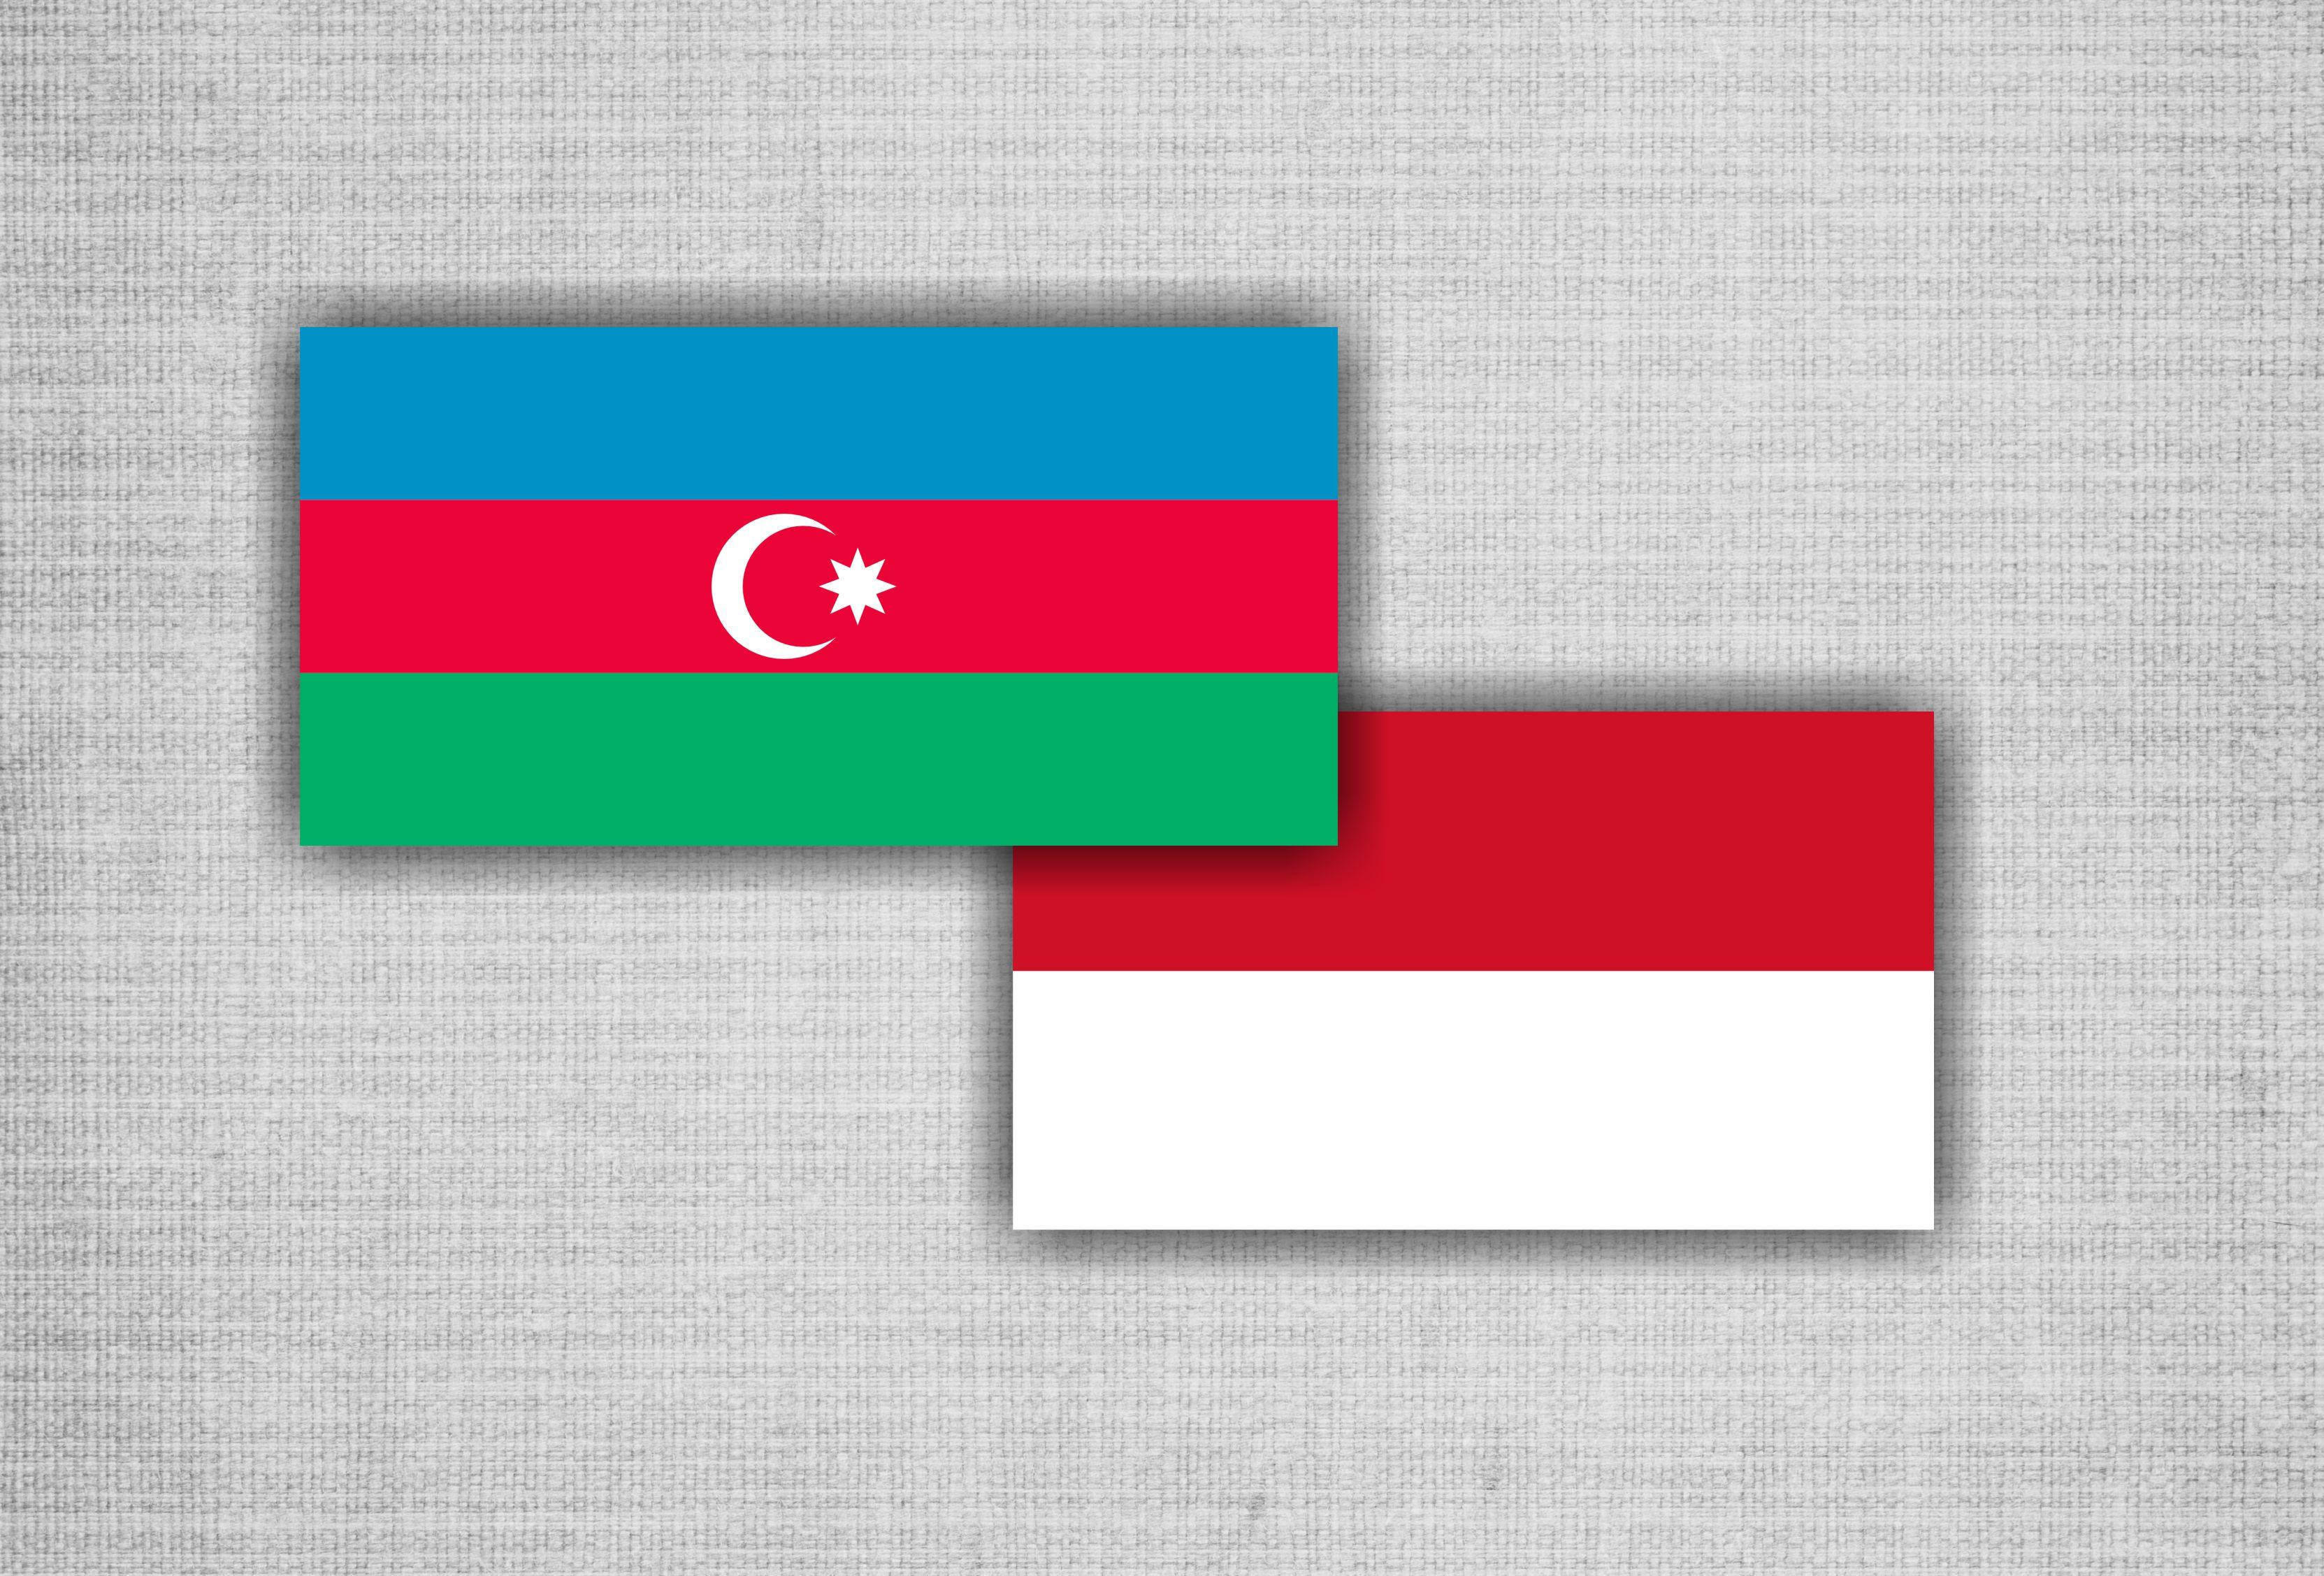 Delegation led by Deputy Chairman of House of Representatives of Indonesia to visit Baku